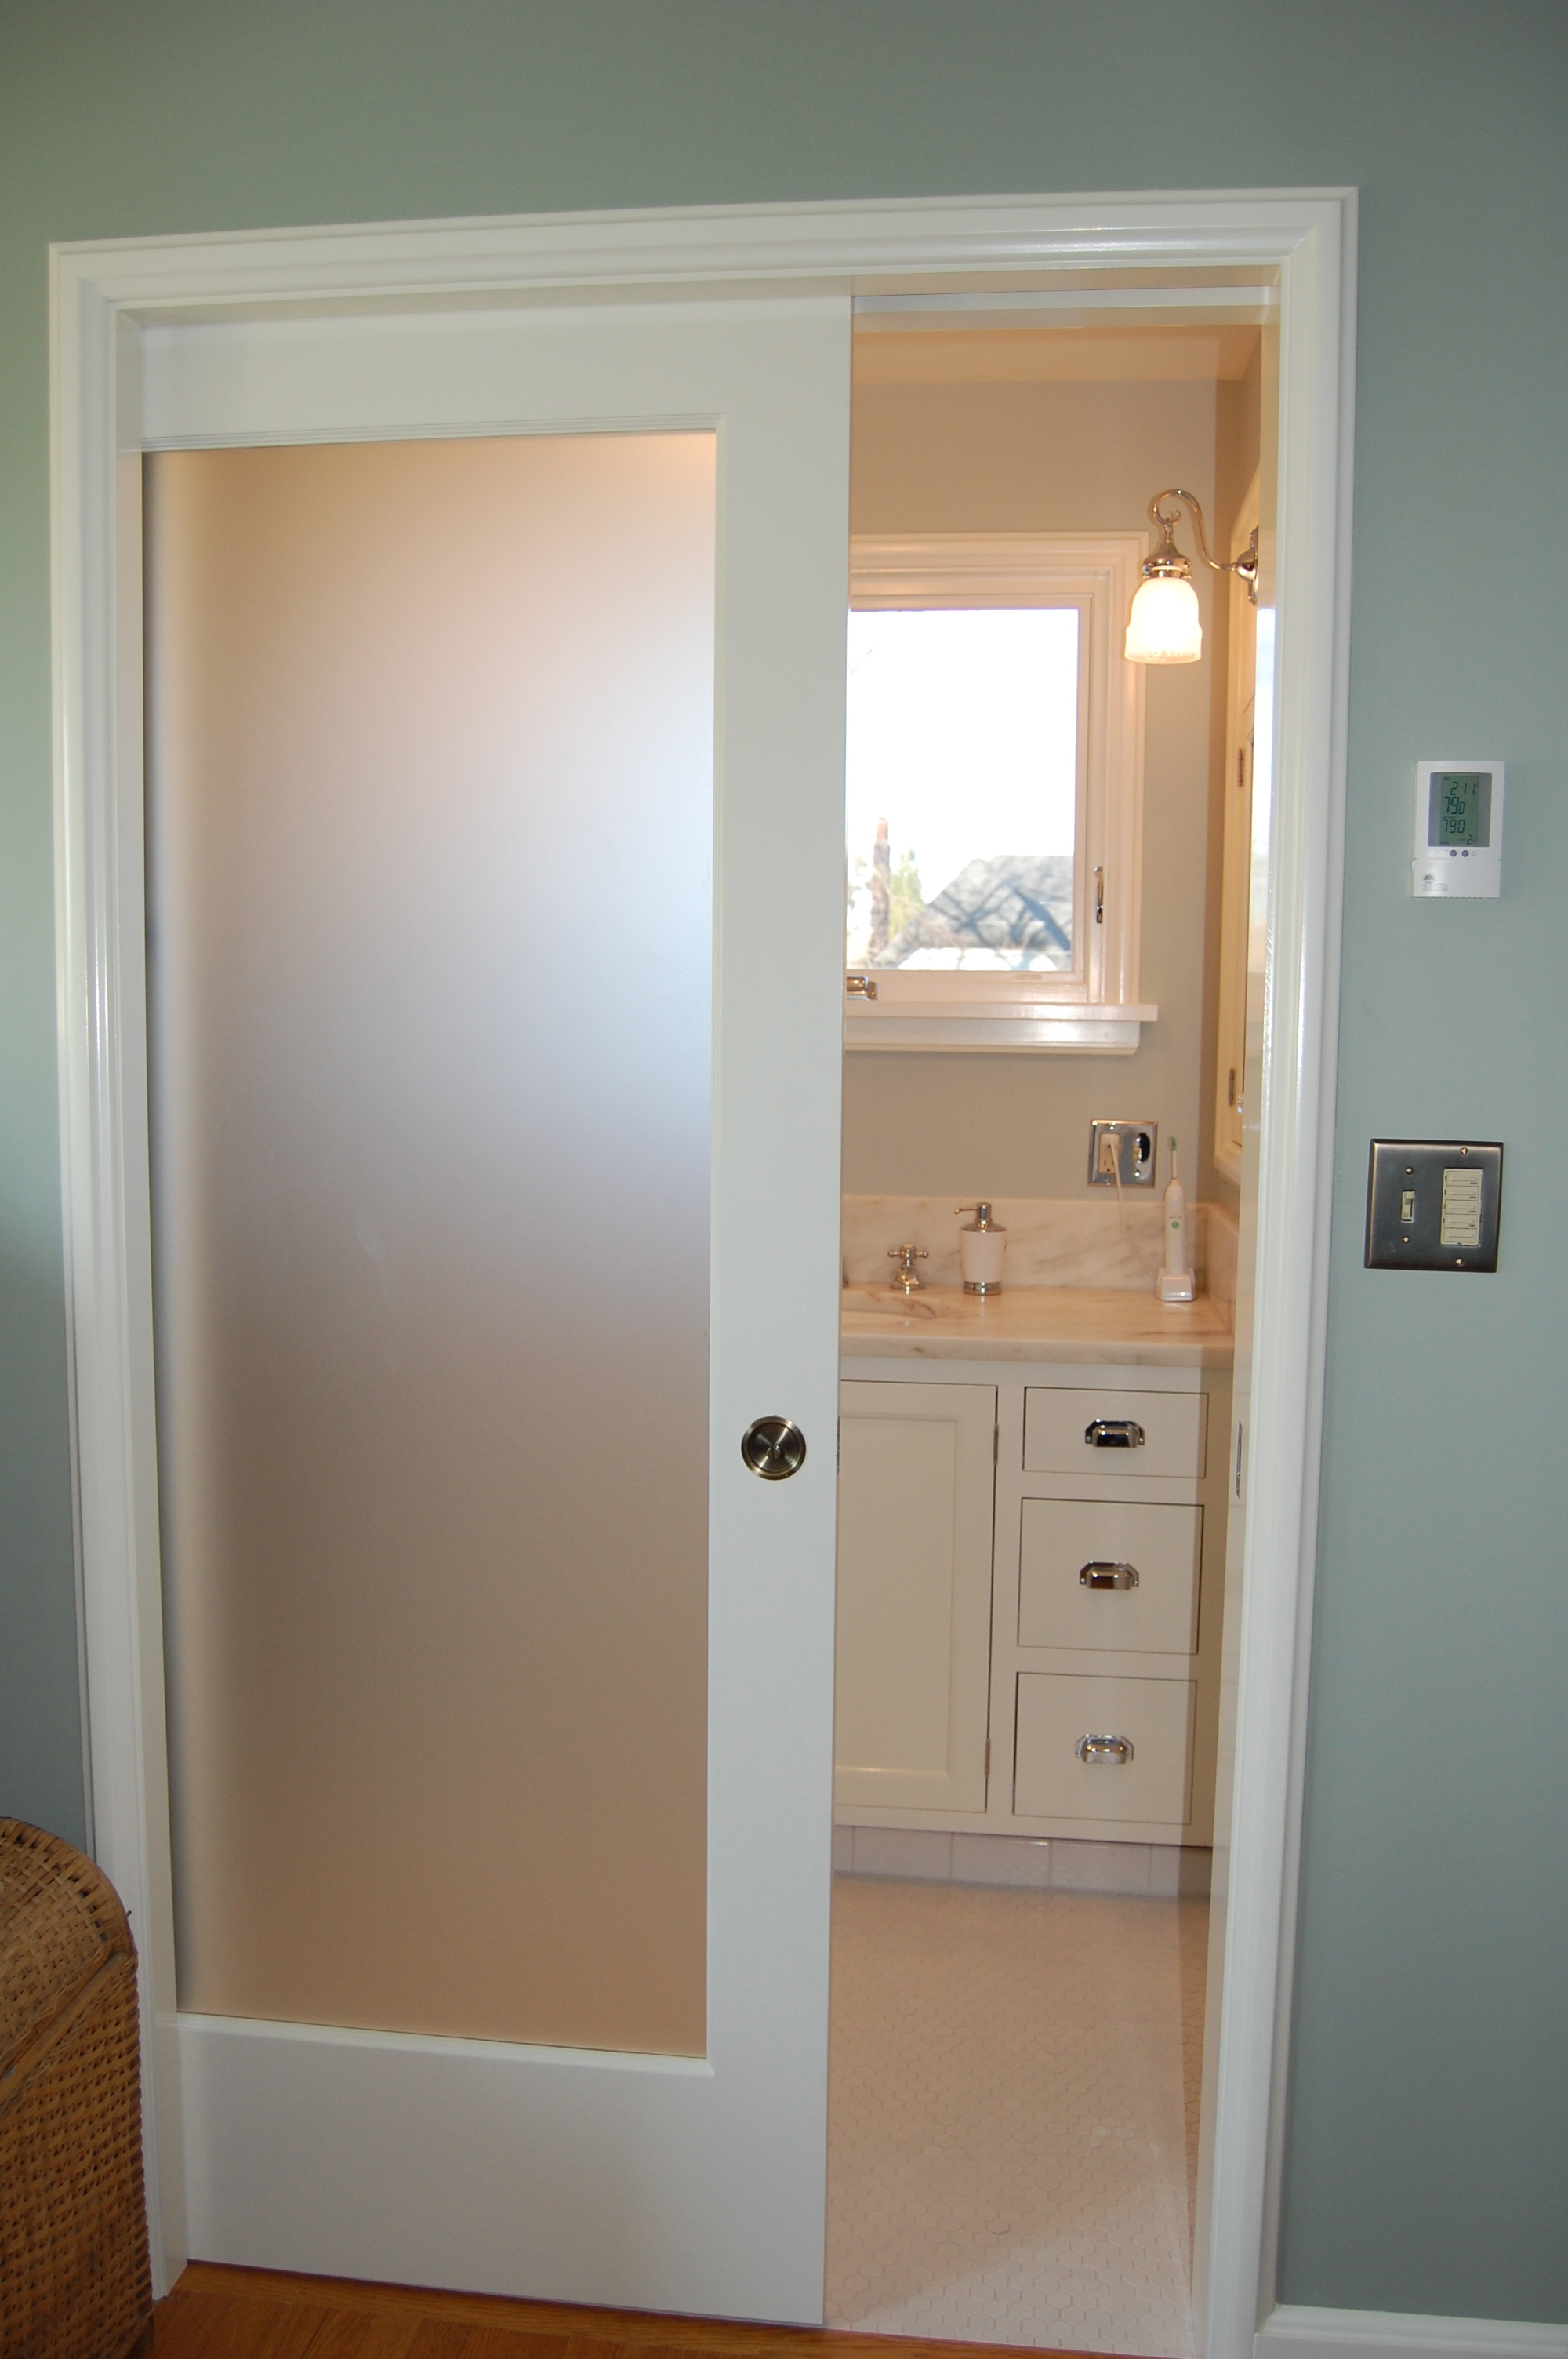 Permalink to Bathroom Sliding Door Pocket